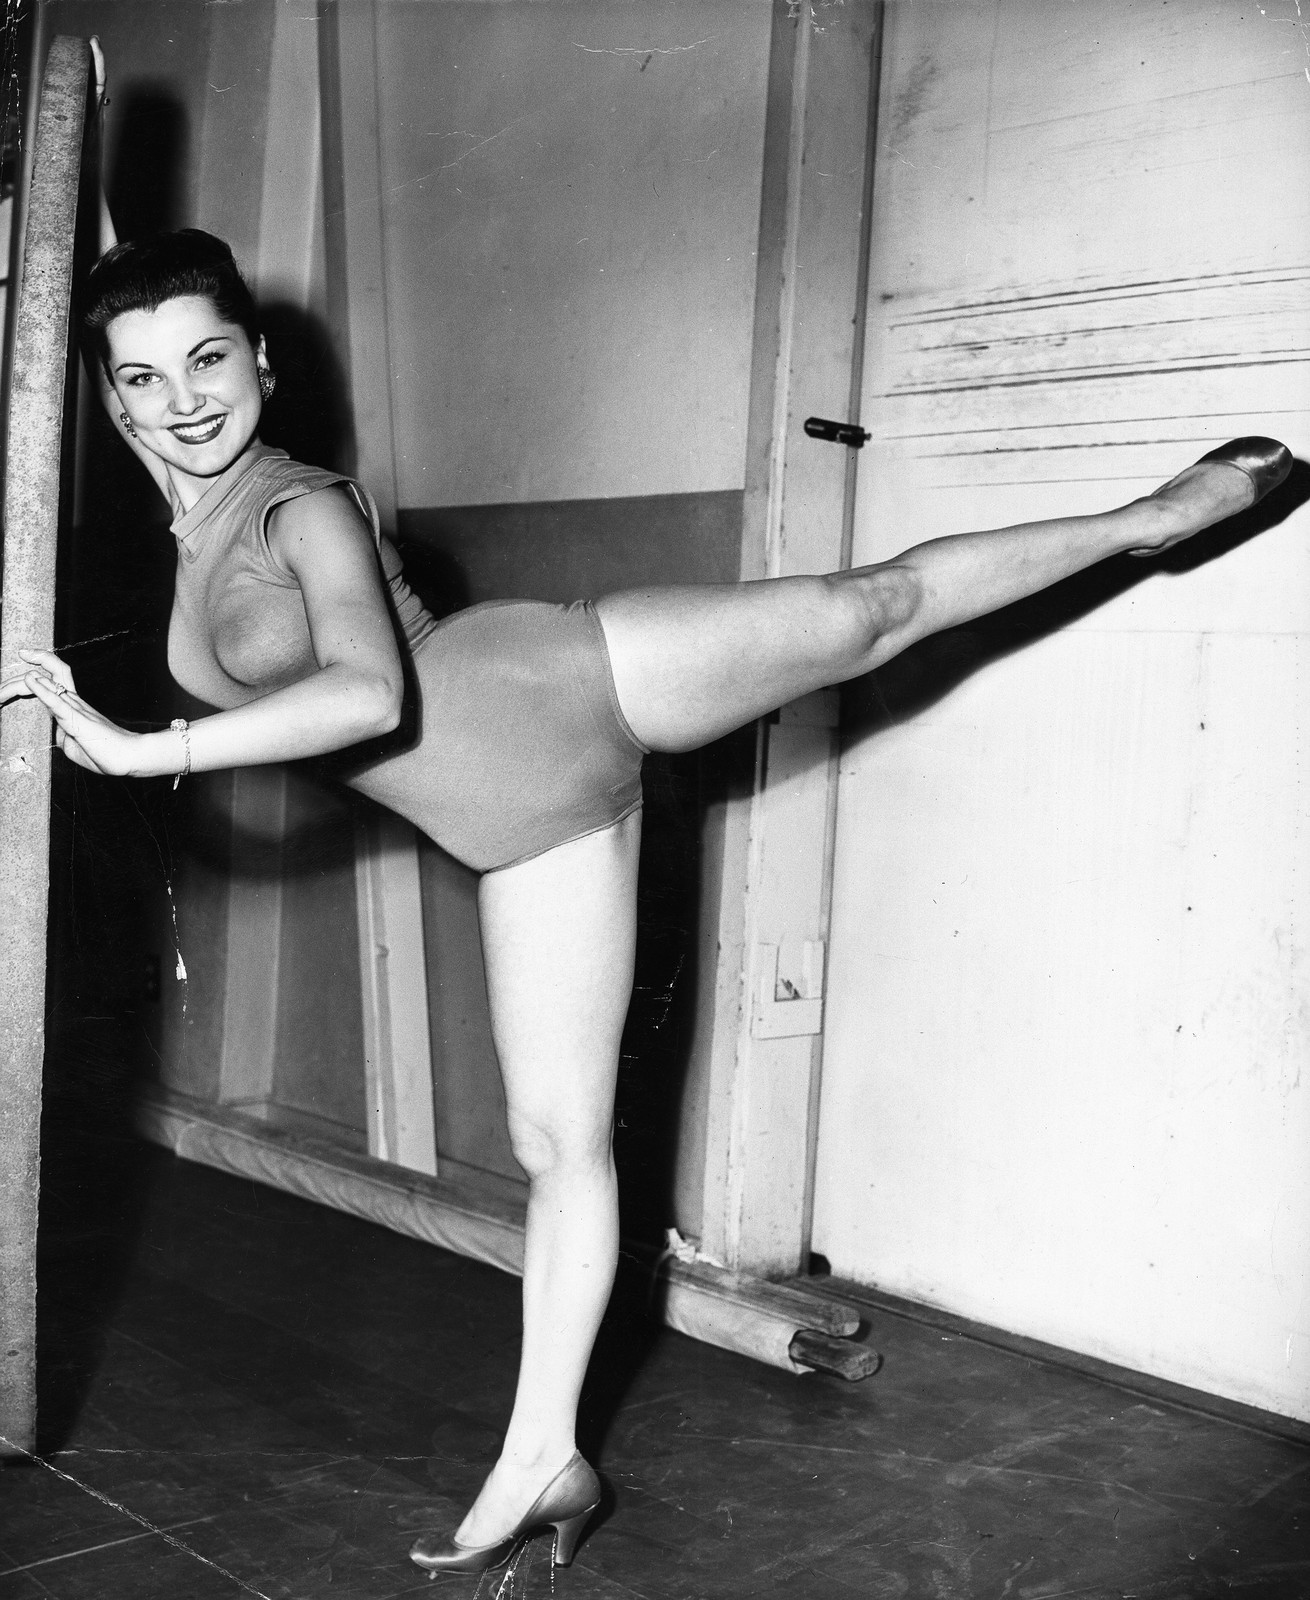 Think, debra paget nude advise you